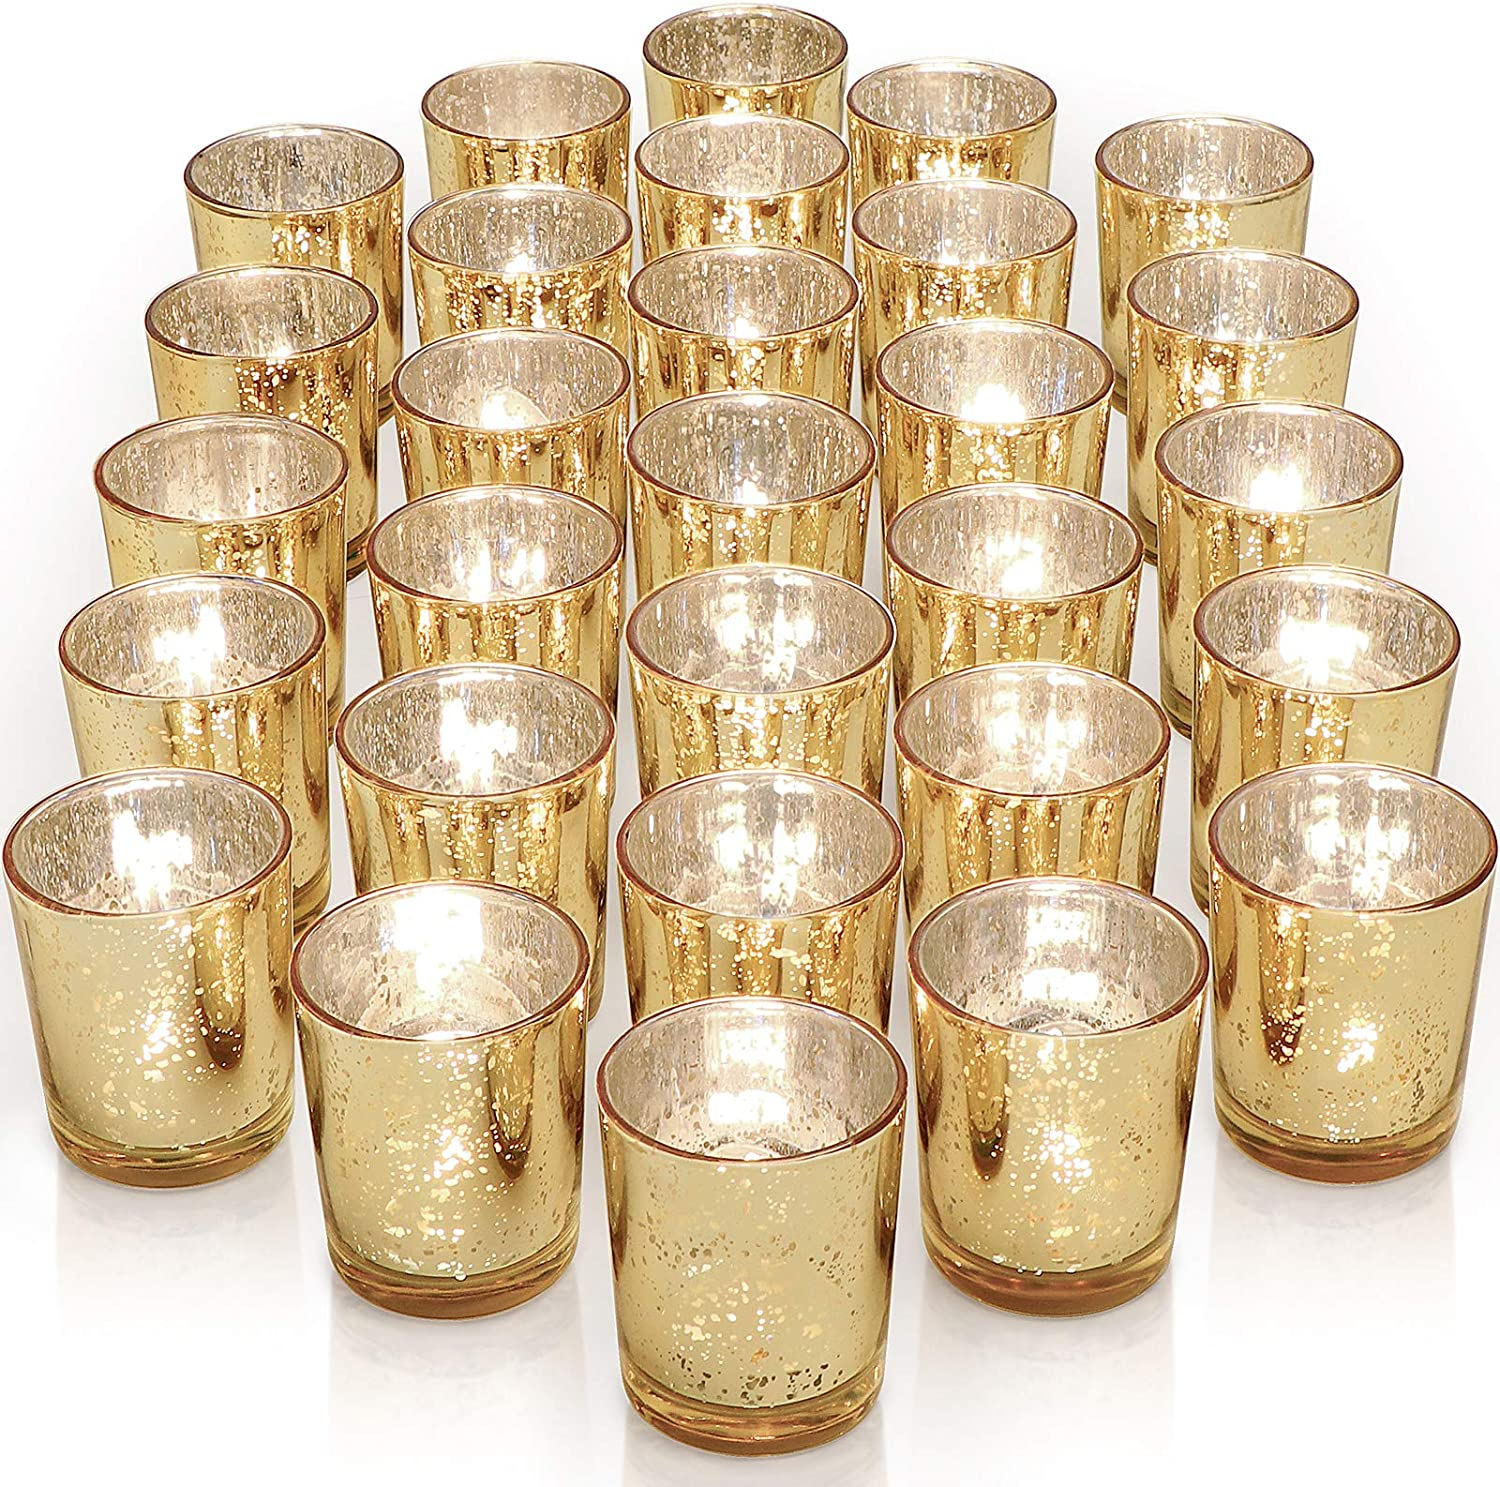 Amazon Com Letine Gold Votive Candle Holders Set Of 36 Speckled Mercury Gold Glass Candle Holder Bulk Ideal For Wedding Centerpieces Home Decor Kitchen Dining